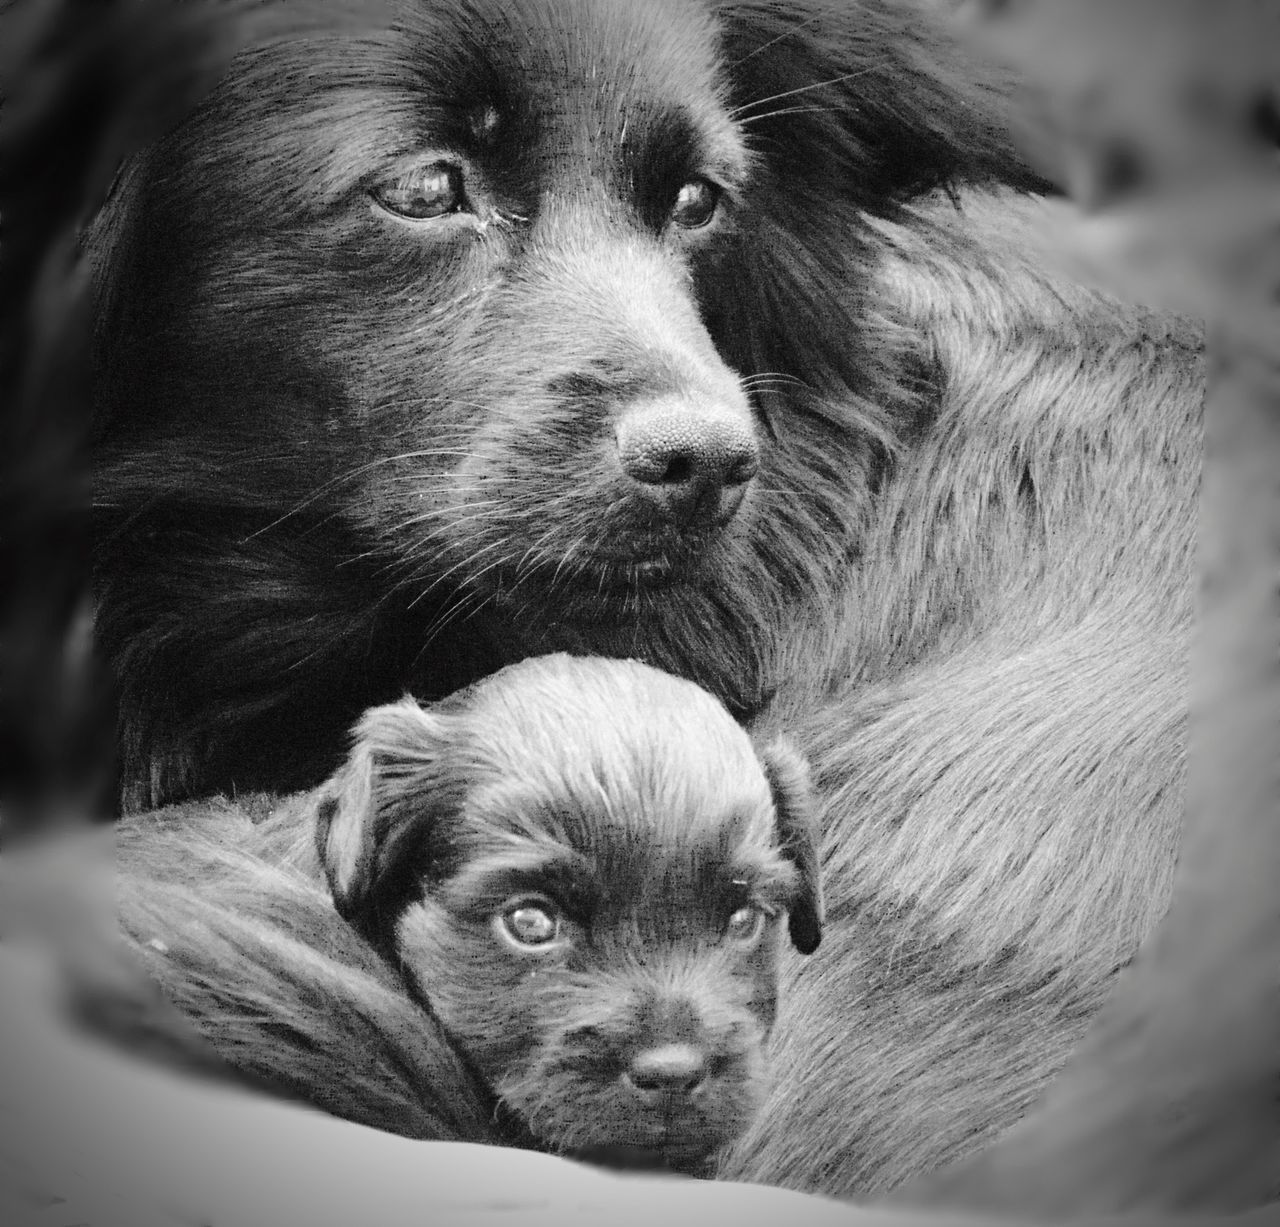 Dog Mammal Animal Themes Cute Pets Domestic Animals Maternity Black Blackandwhite Animal Family Puppy Looking At Camera Animal Eye Only One No People Portrait Indoors  Day Total Black EyeEmNewHere Welcome To Black